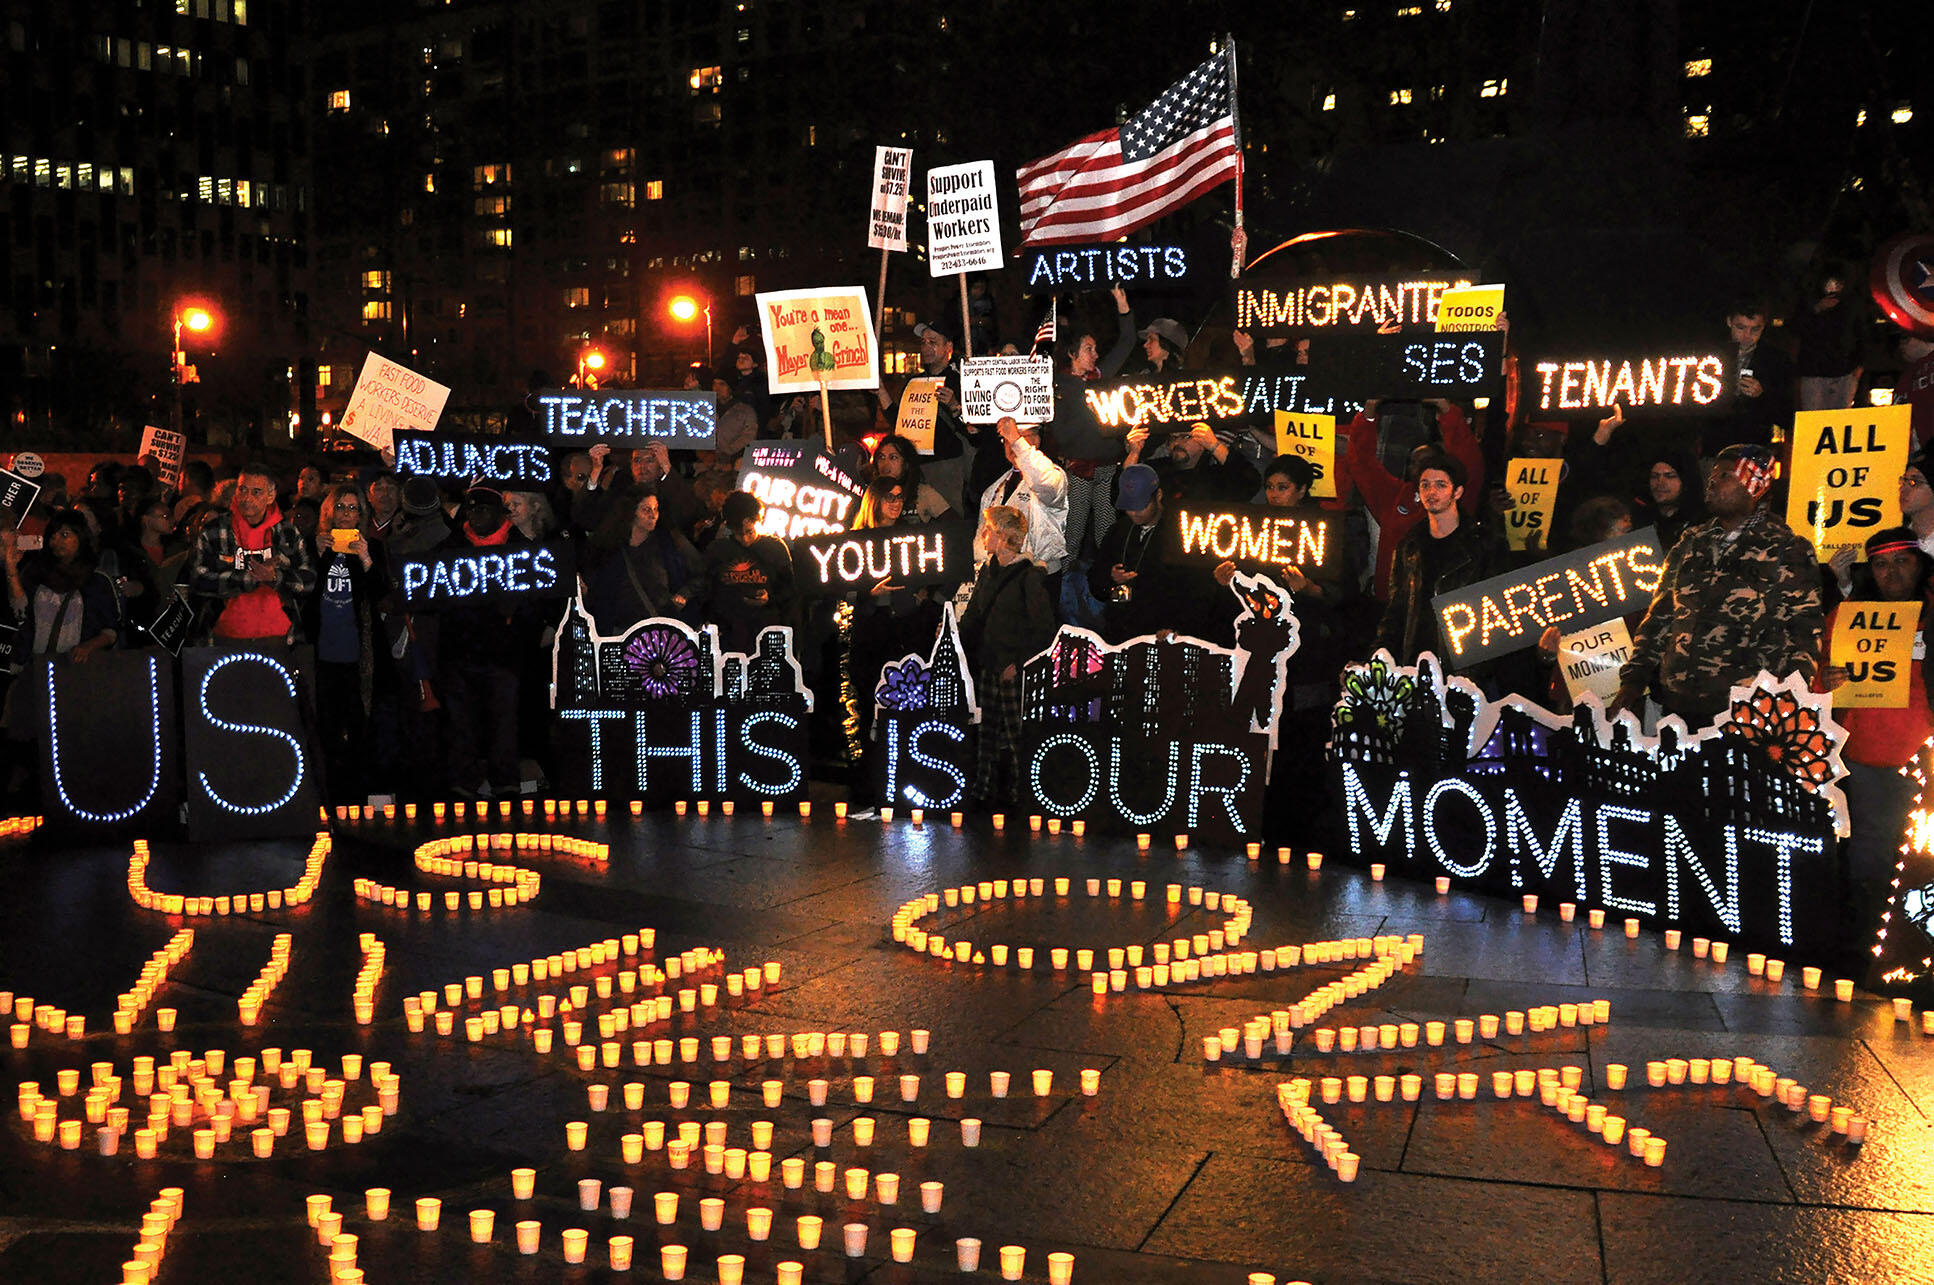 A candlelit 2014 rally in support of a liveable minimum wage. (Photo by Michael Fleshman.)